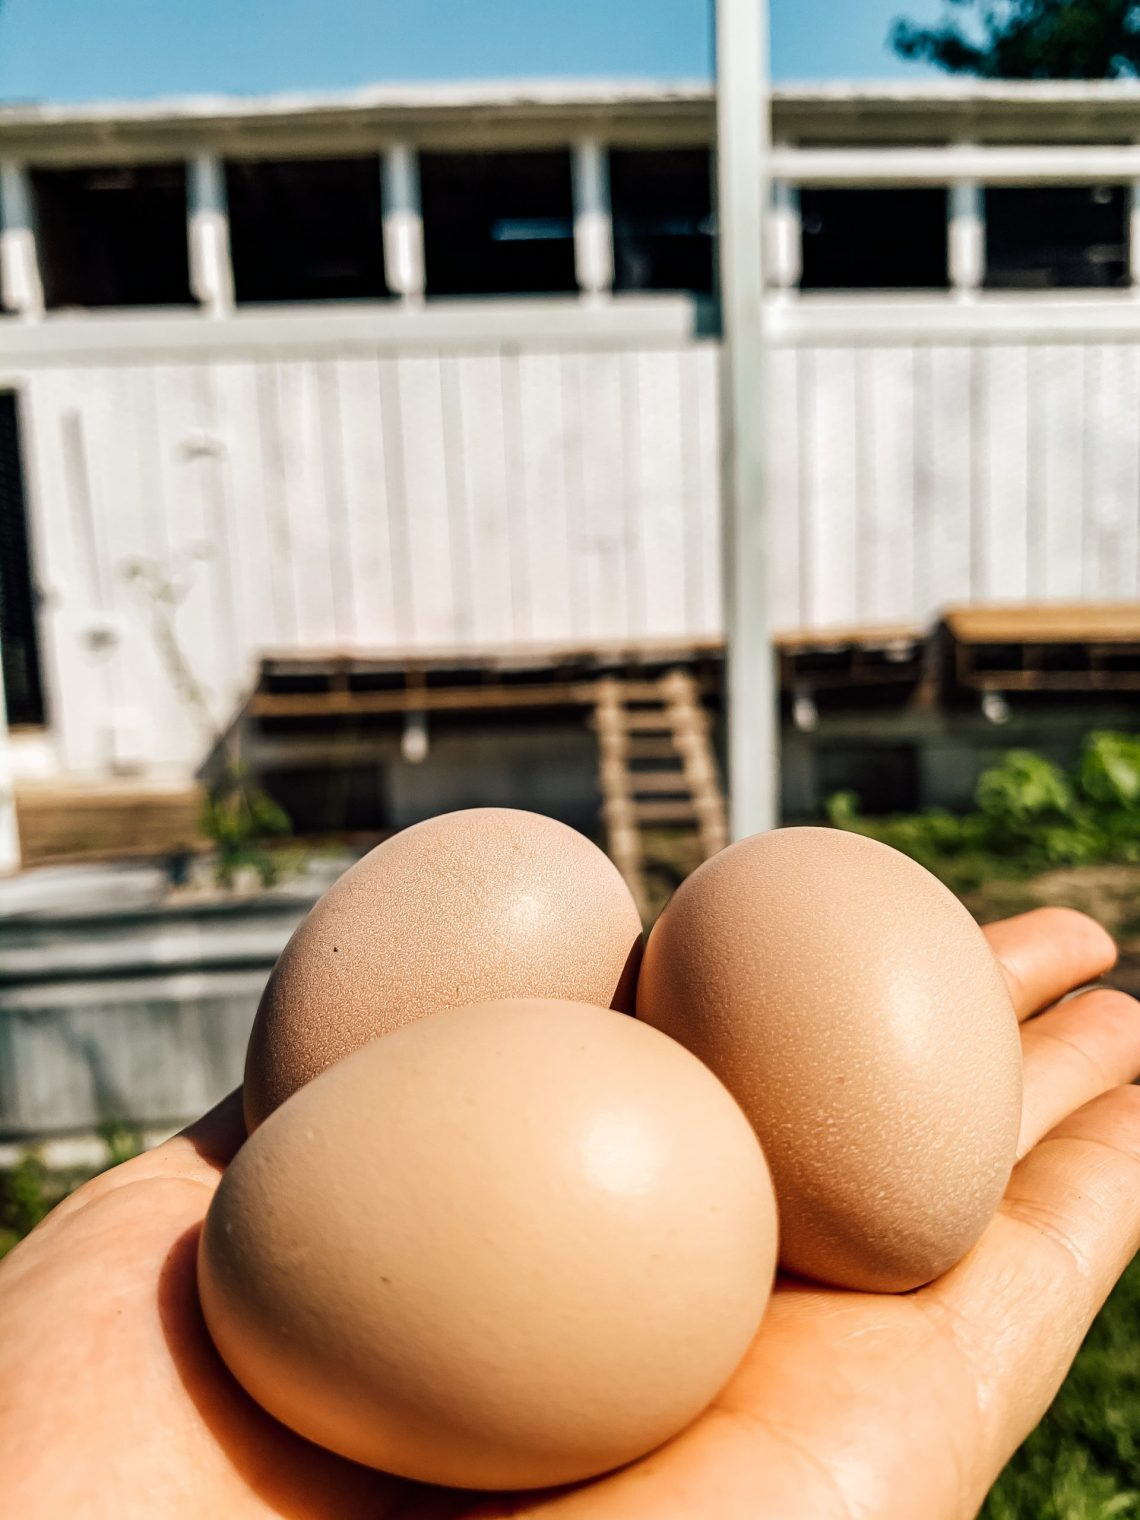 Weekly Farm Update: Farmhouse Projects and Eggs